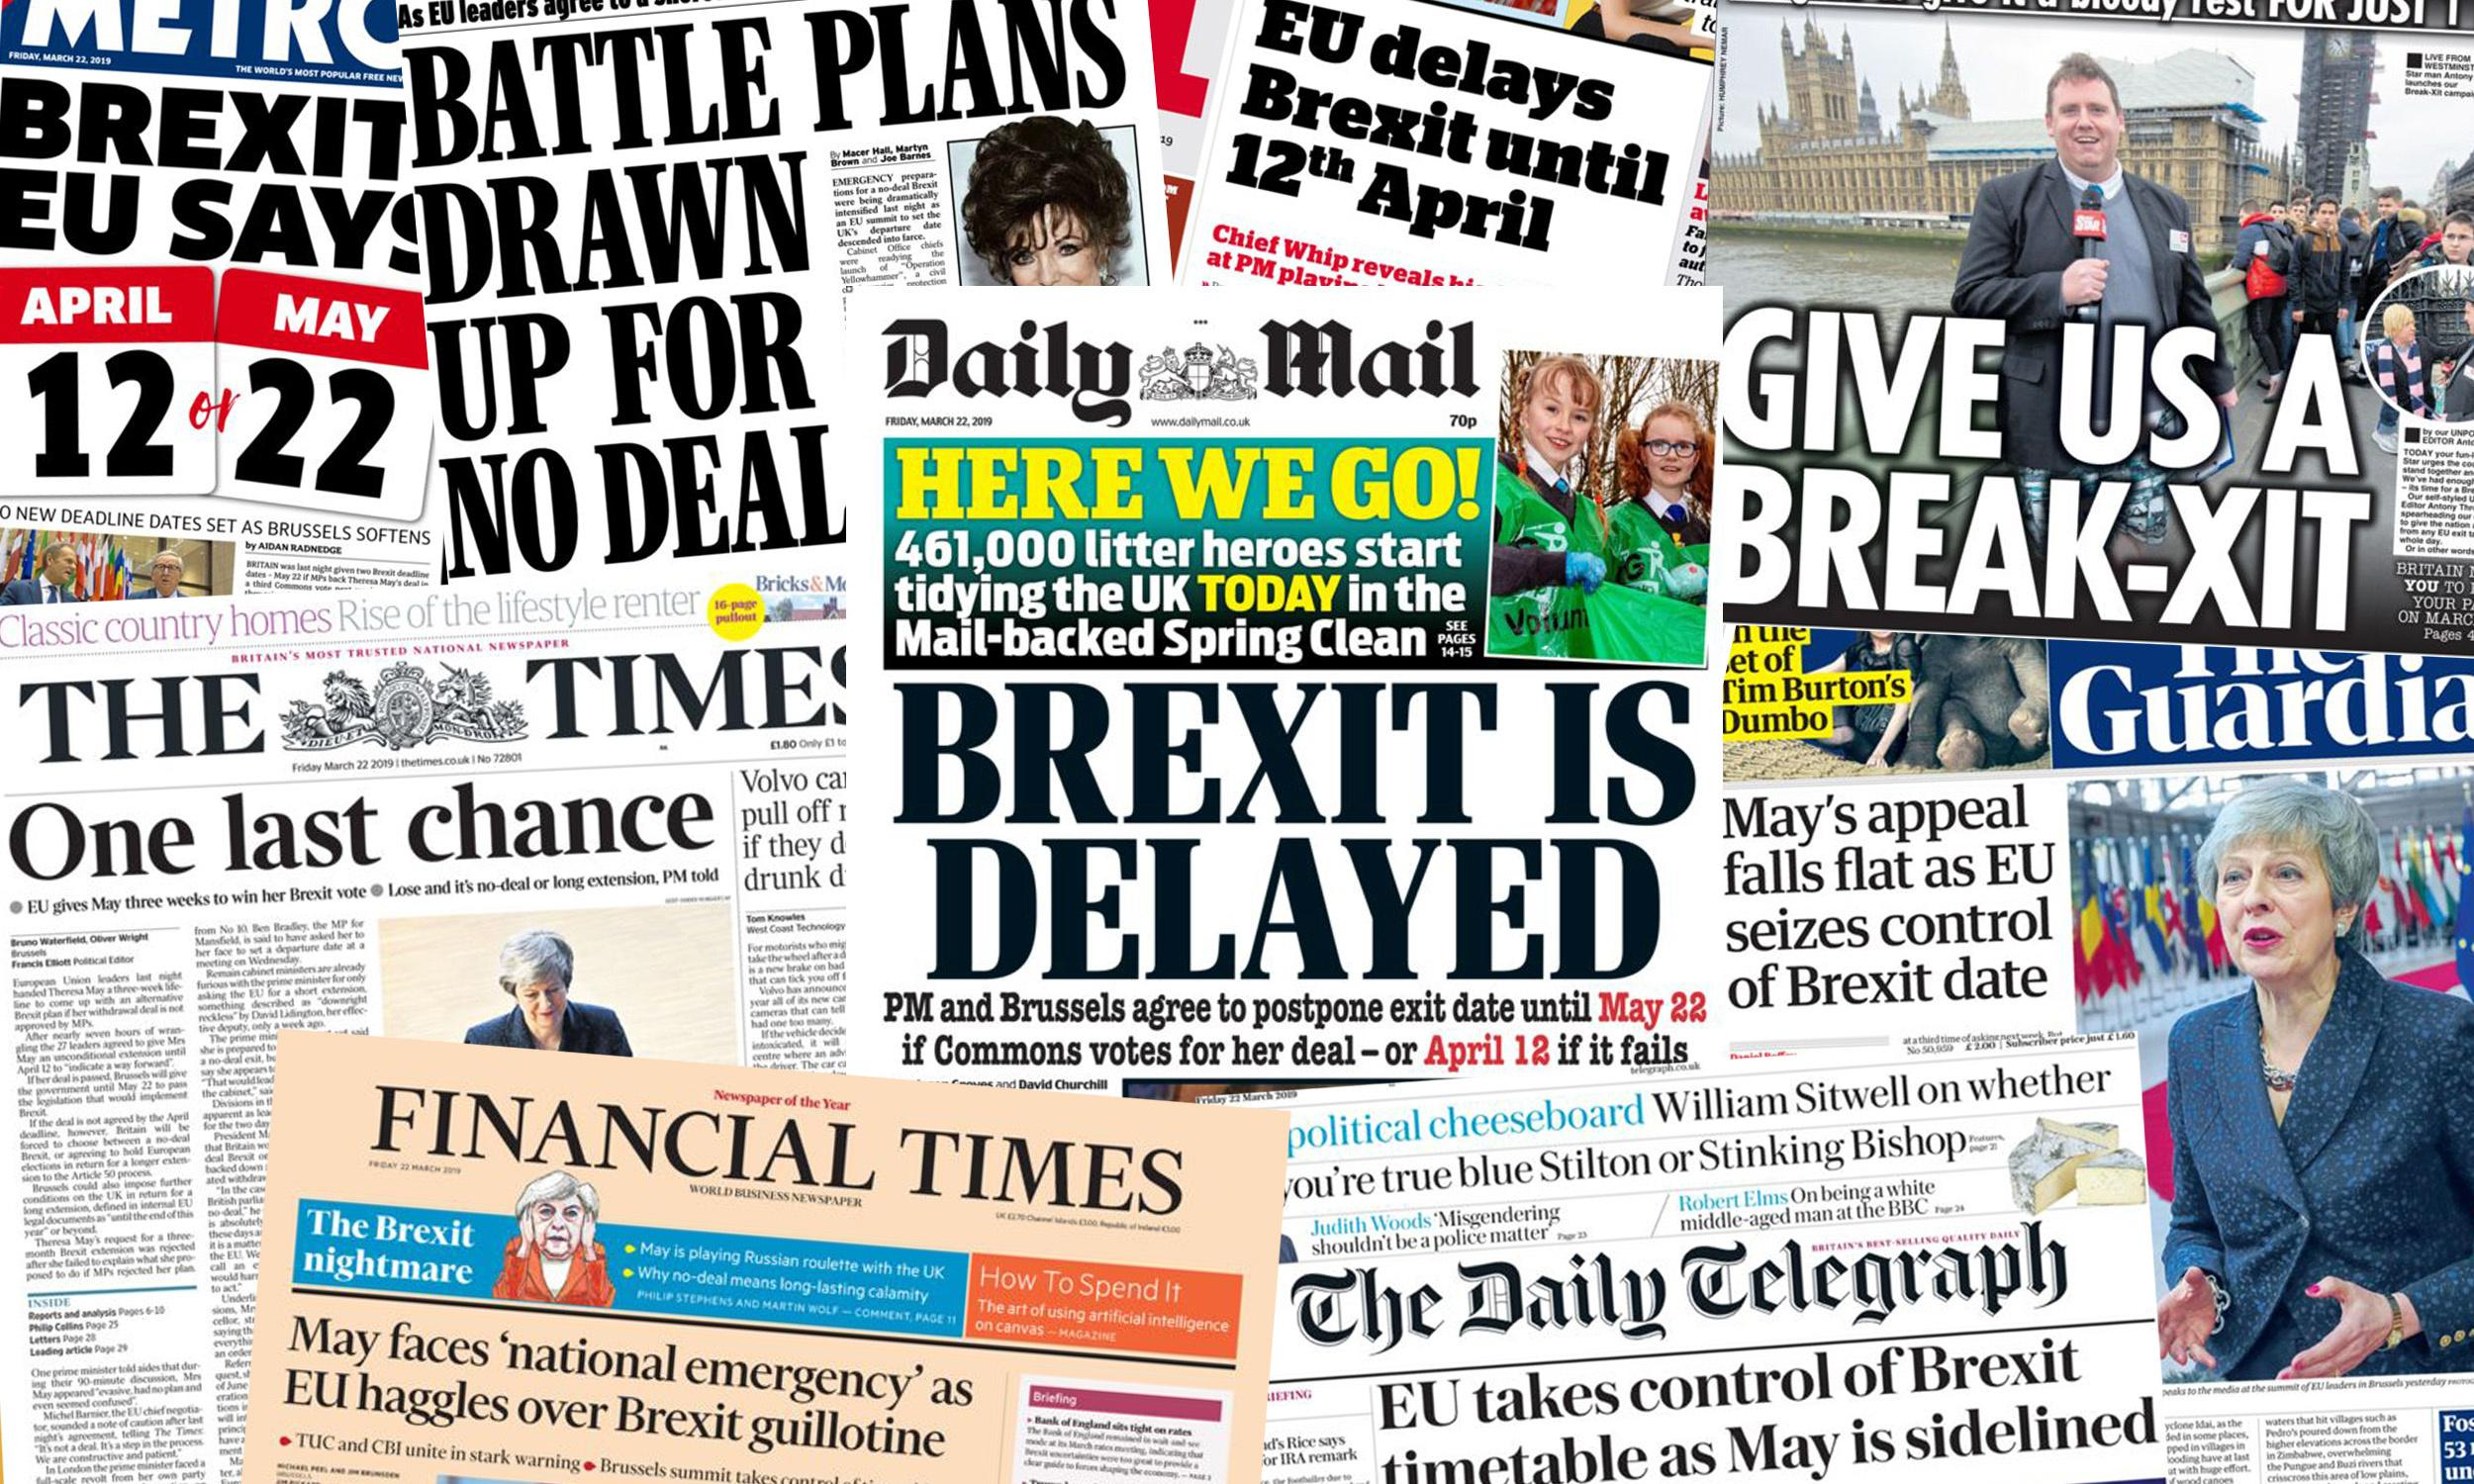 'One last chance': what the UK papers say about Brexit delay